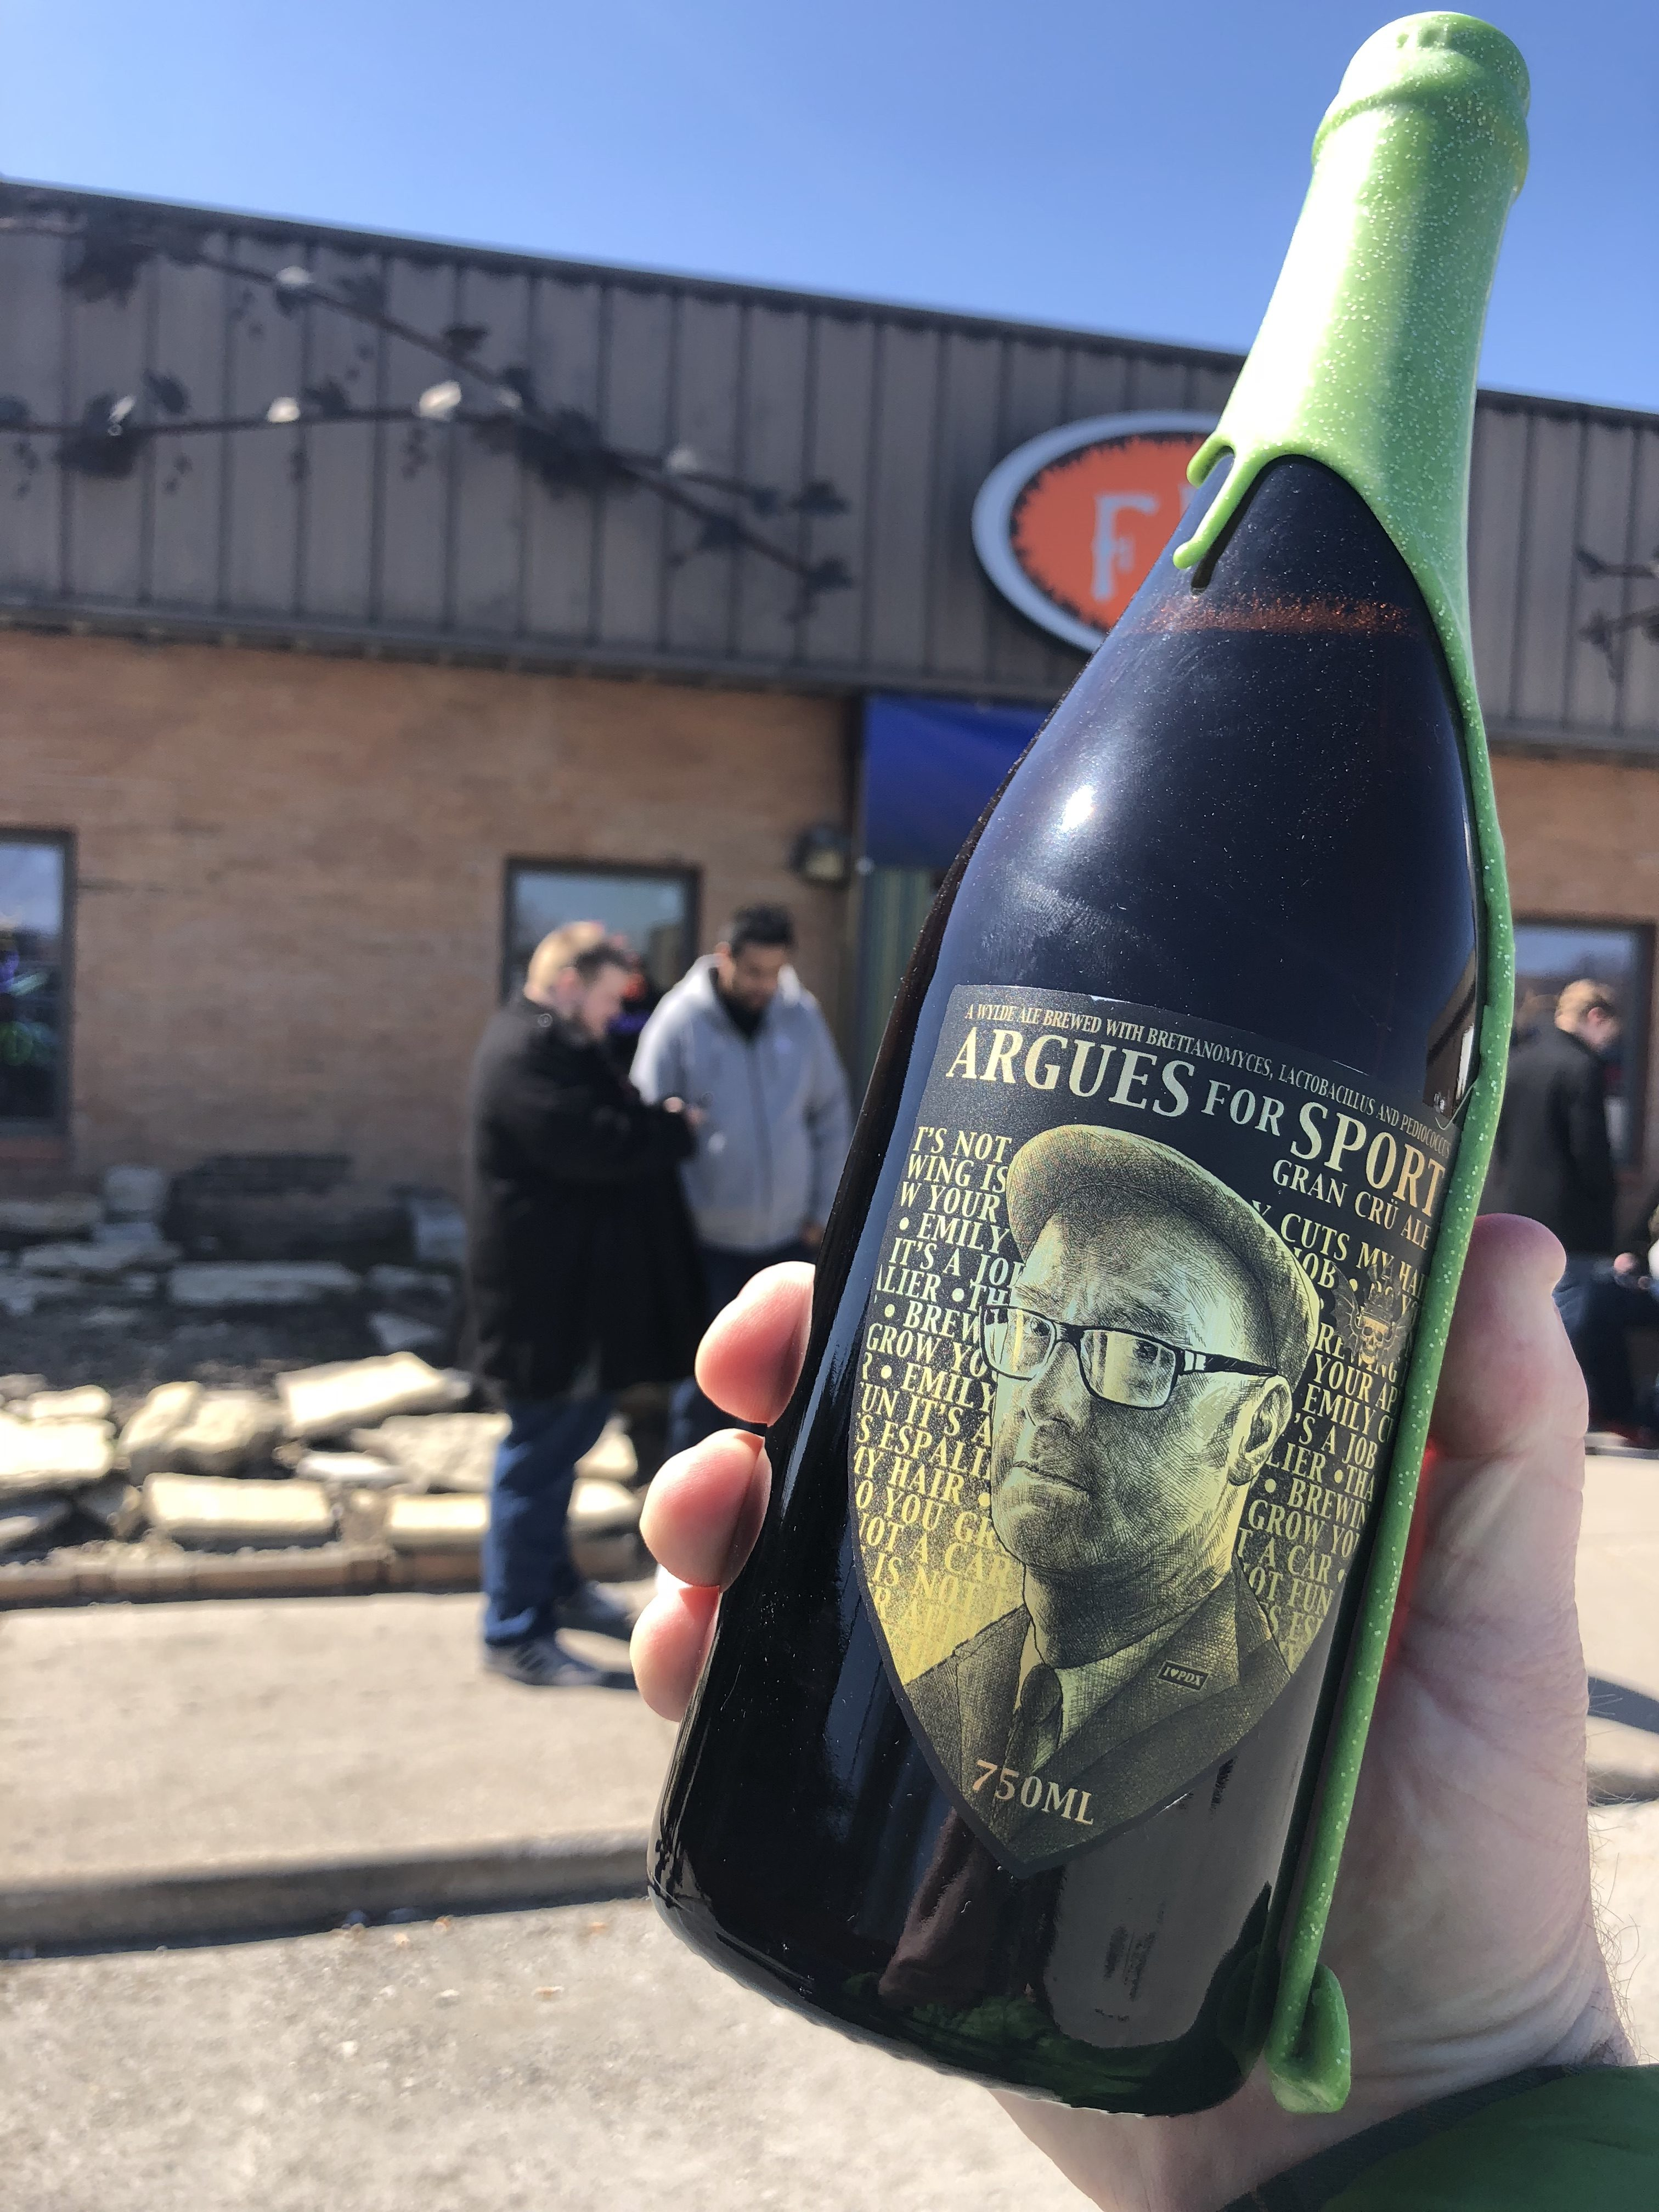 3 Floyds Brewing brewed Argues For Sport - Gran Cru Ale that honored Gigantic Brewing co-founder Van Havig in 2018.